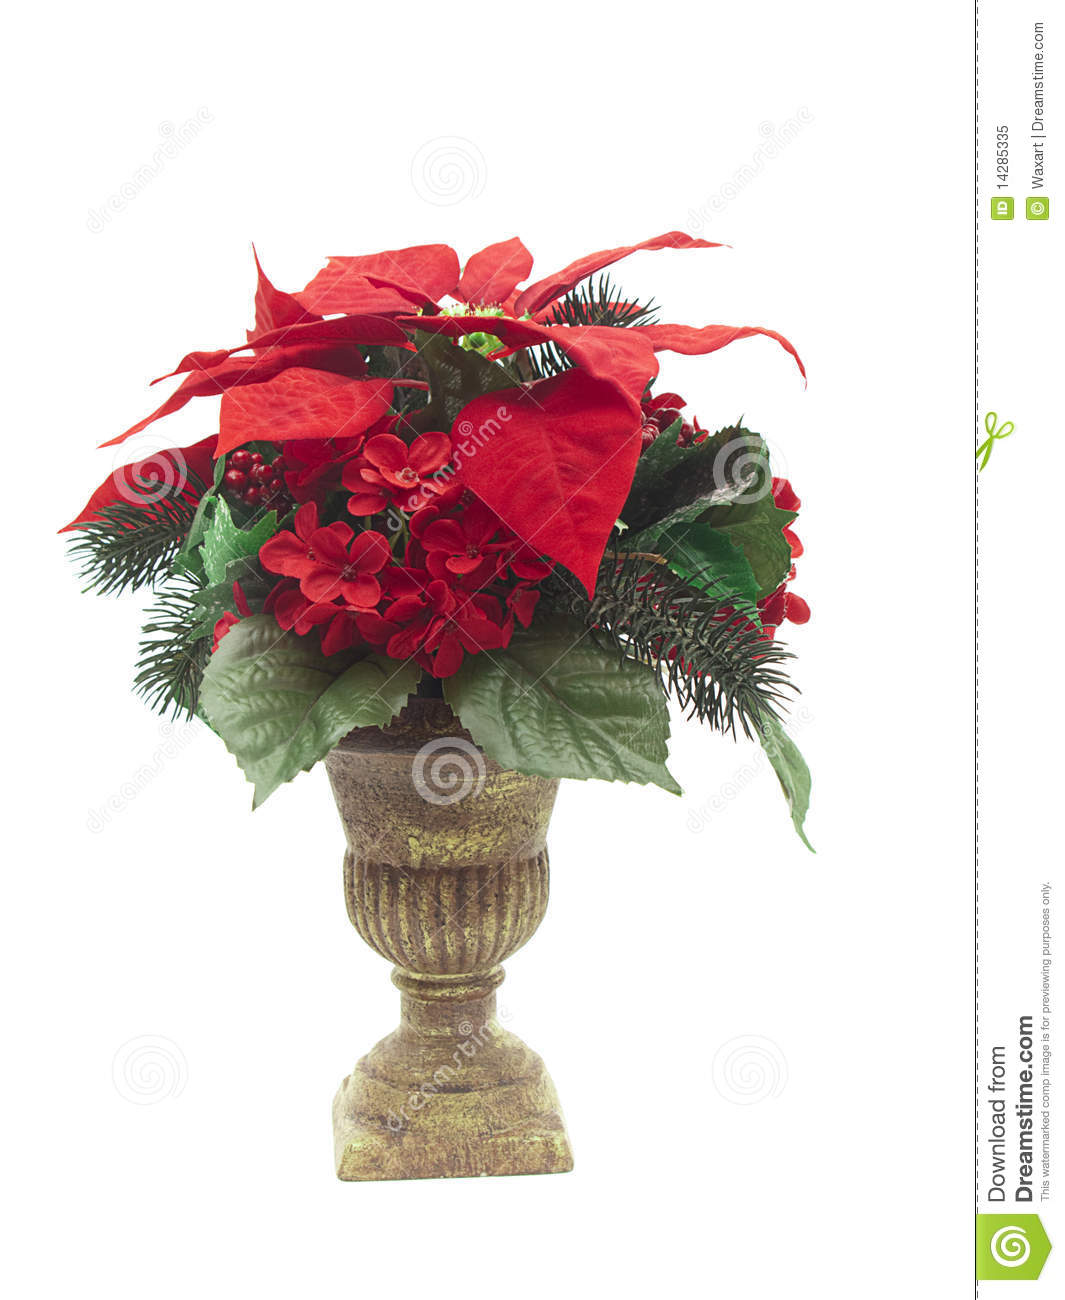 Urn With Christmas Flower Arrangement On White Stock Image Image Of Arrangement Ornamental